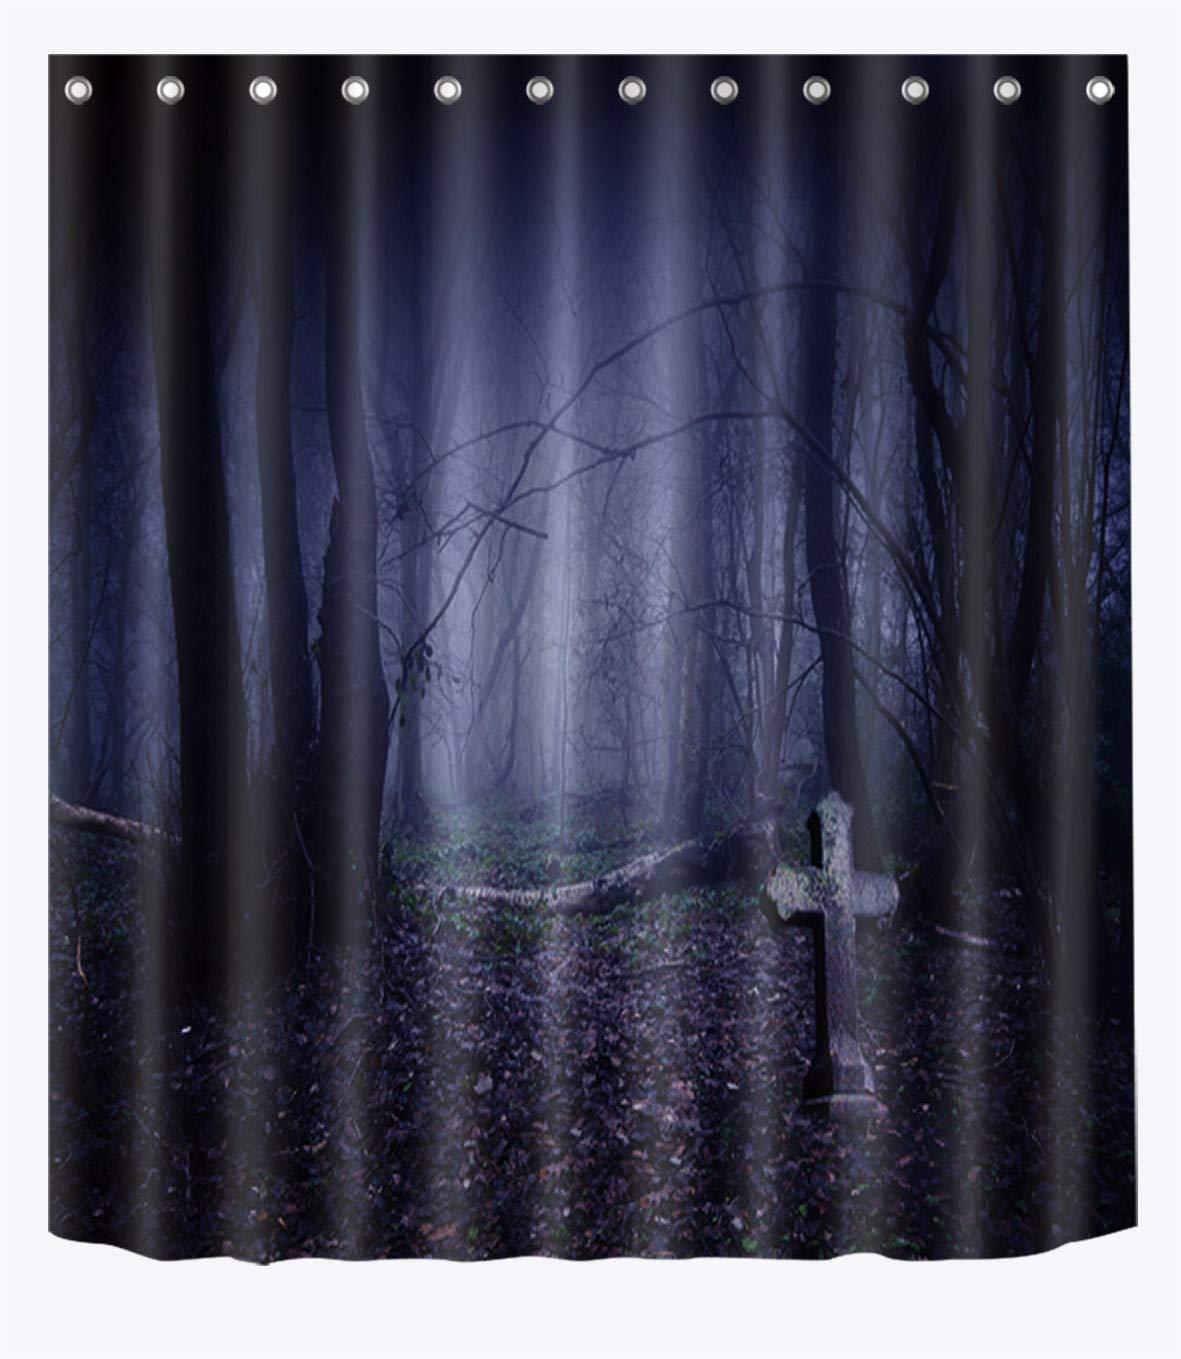 LB Spooky Graveyard In Dark Forest Shower Curtain Set For Bathroom Scary Halloween Decor 70x70 Inch Polyester Fabric Waterproof Mold